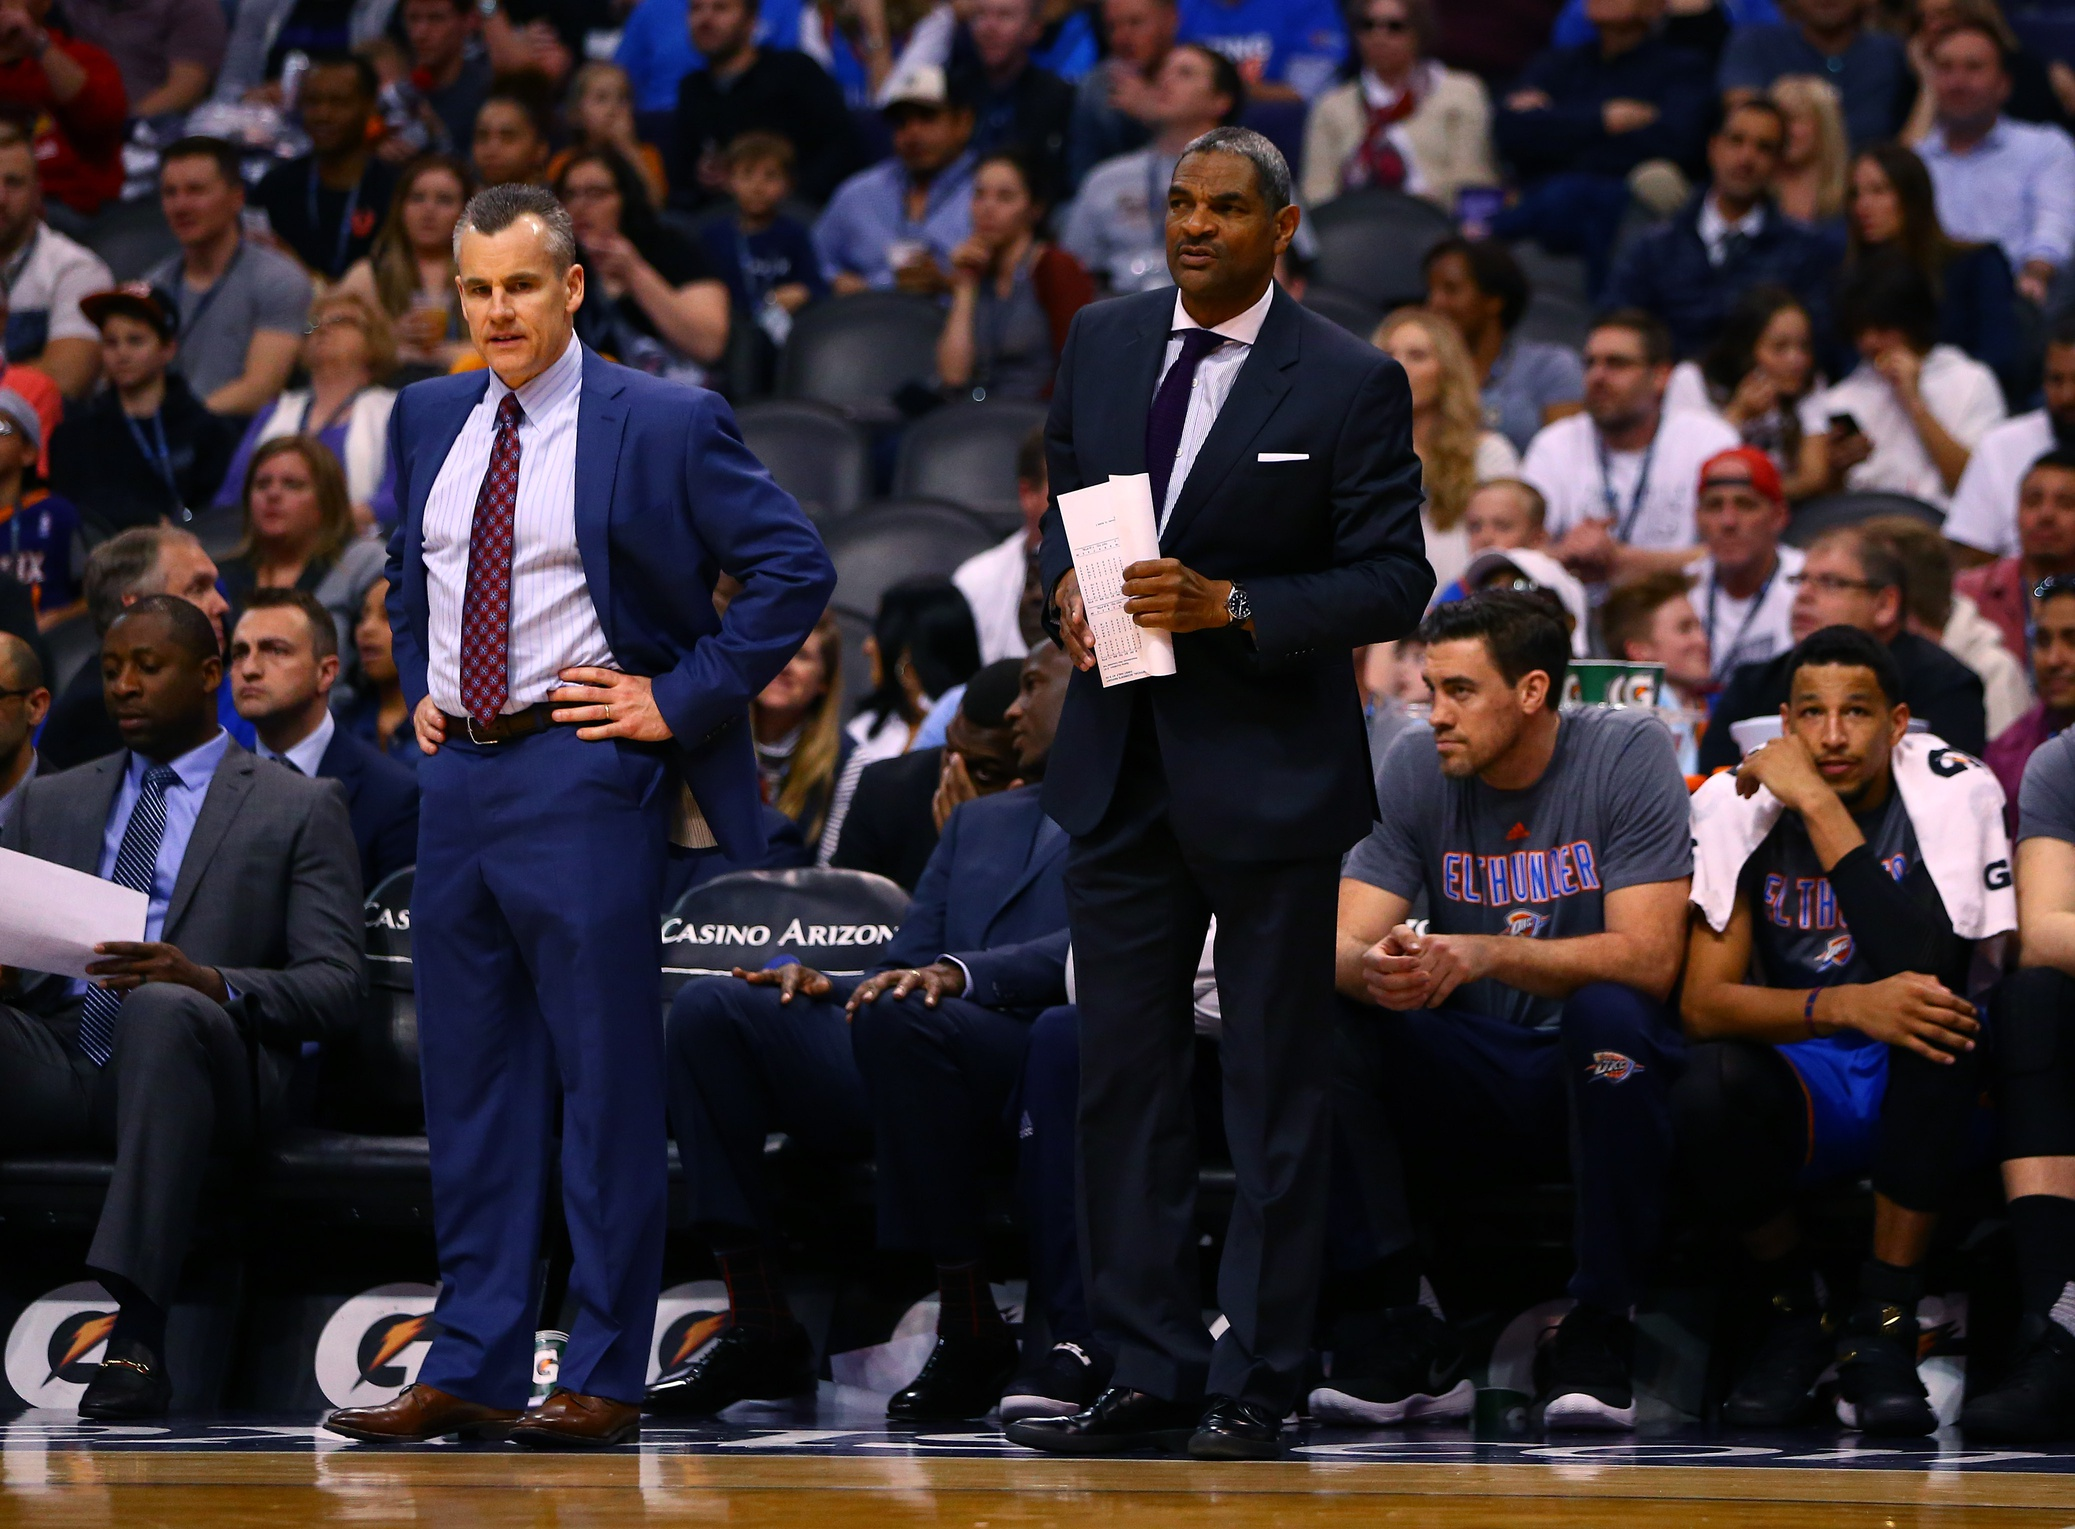 Maurice Cheeks Joins Billy Donovan's Chicago Bulls Staff